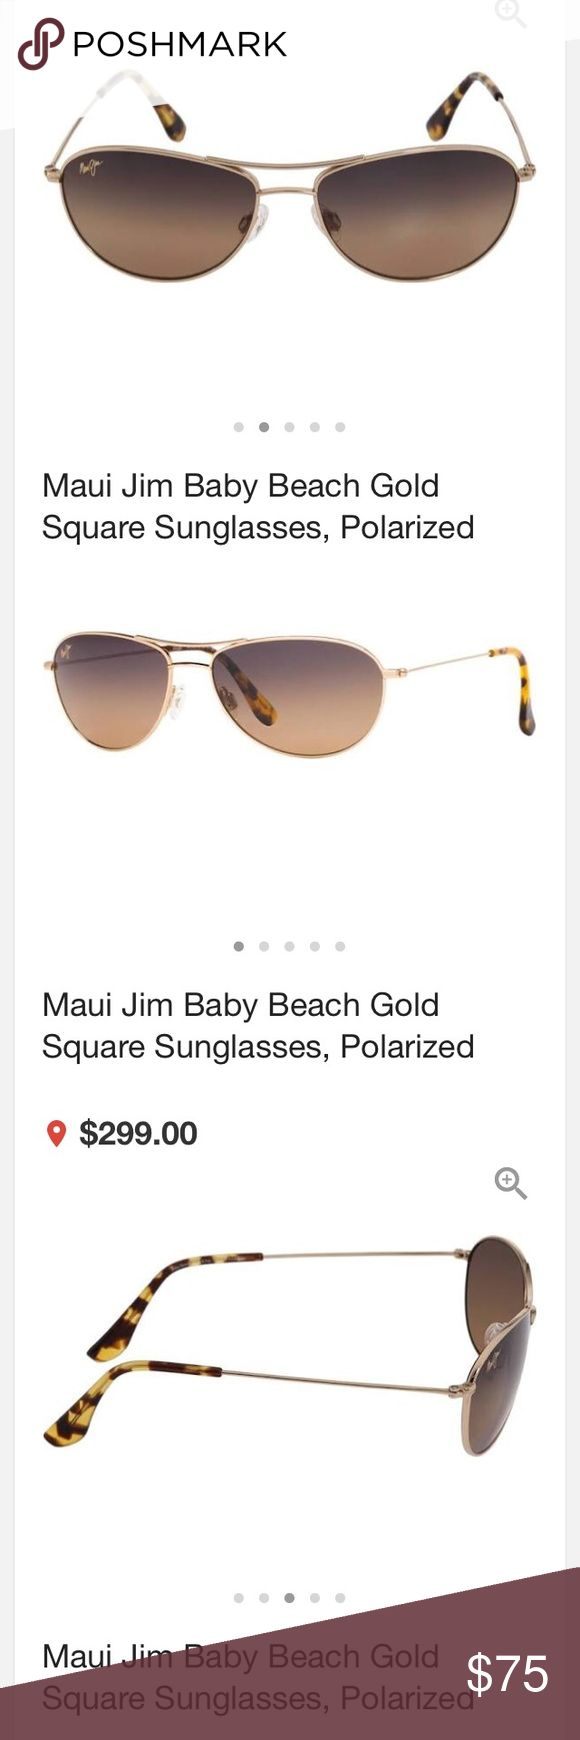 Maui Jim Baby Beach gold square polarized sunglass Maui Jim Baby Beach gold square polarized sunglasses 😎.  These gorgeous sunglasses have gold frames and brown polarized lenses.  Comes with a brand new original case and new original cleaning cloth.  I absolutely love these but getting a brand new Tiffany pair for Christmas 🎄.   Extremely comfortable on as well as sophisticated looking.  Polarized lenses have minor surface scratches.  Frames are in perfect condition.  This style made for a…